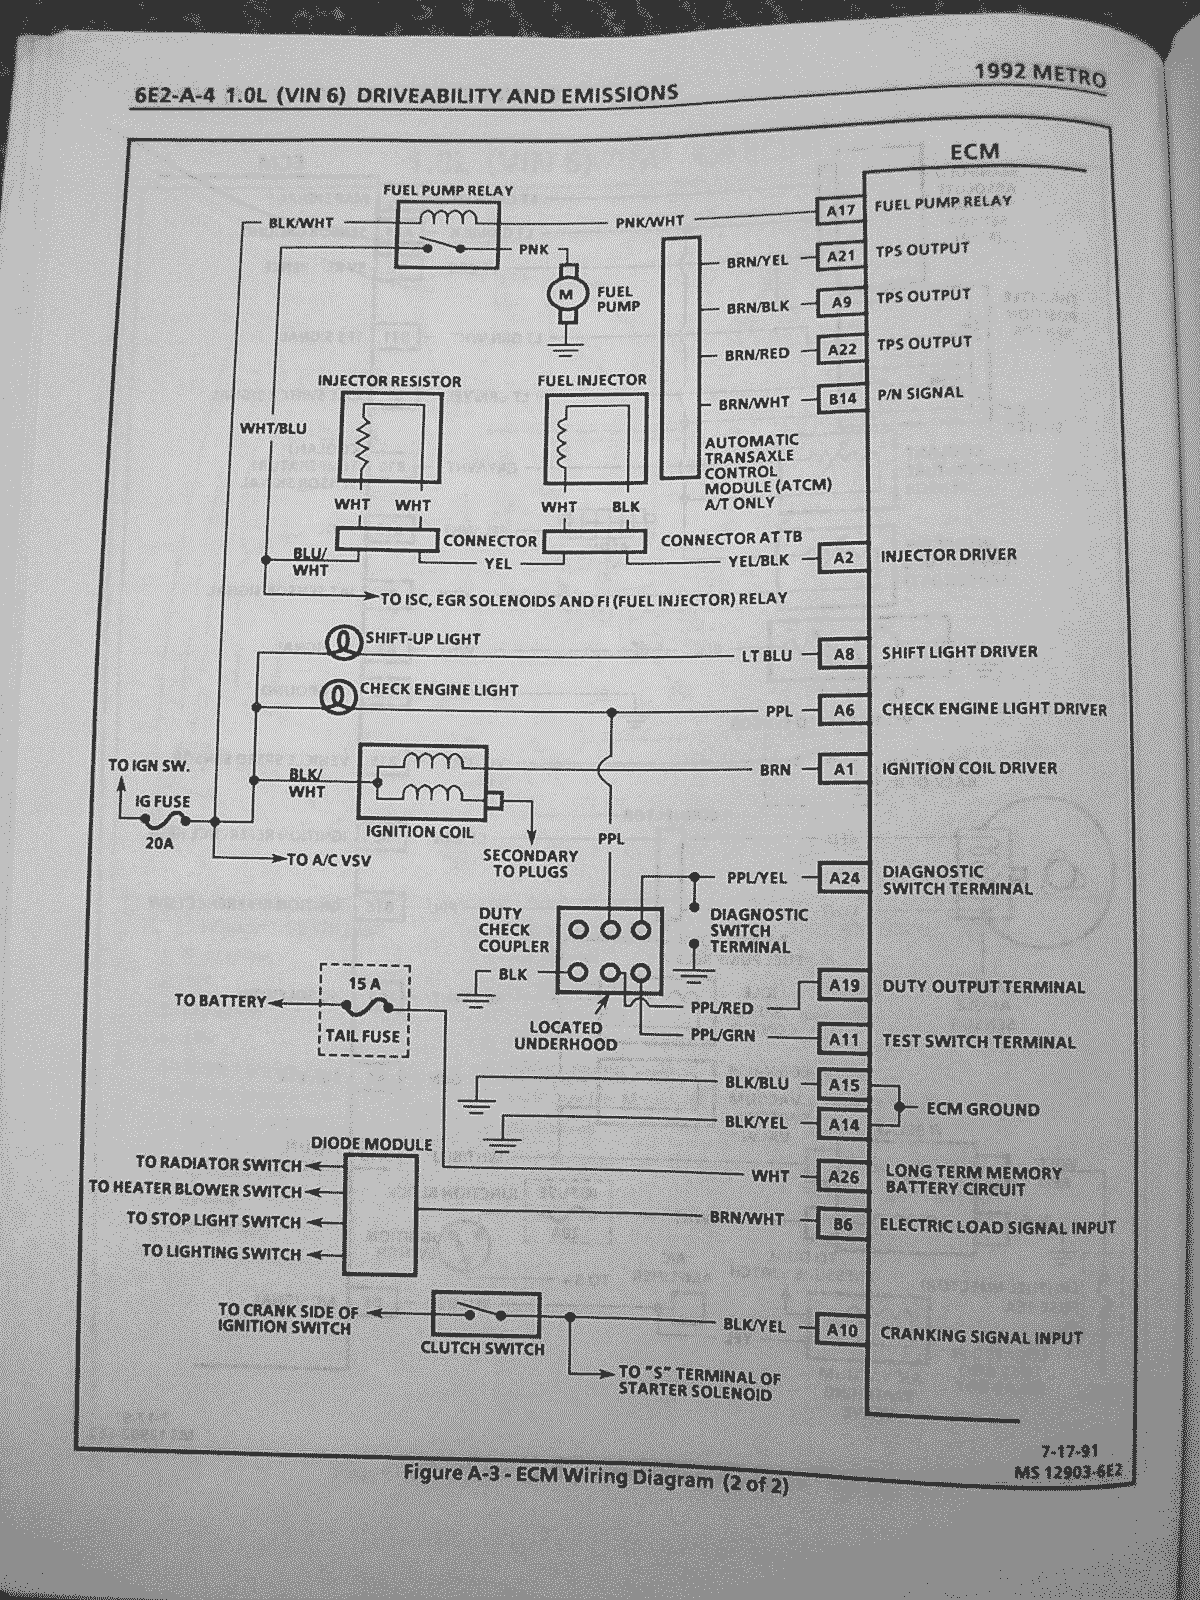 6e2 a 4 geo metro and suzuki swift wiring diagrams metroxfi com 1991 geo metro fuse box diagram at aneh.co